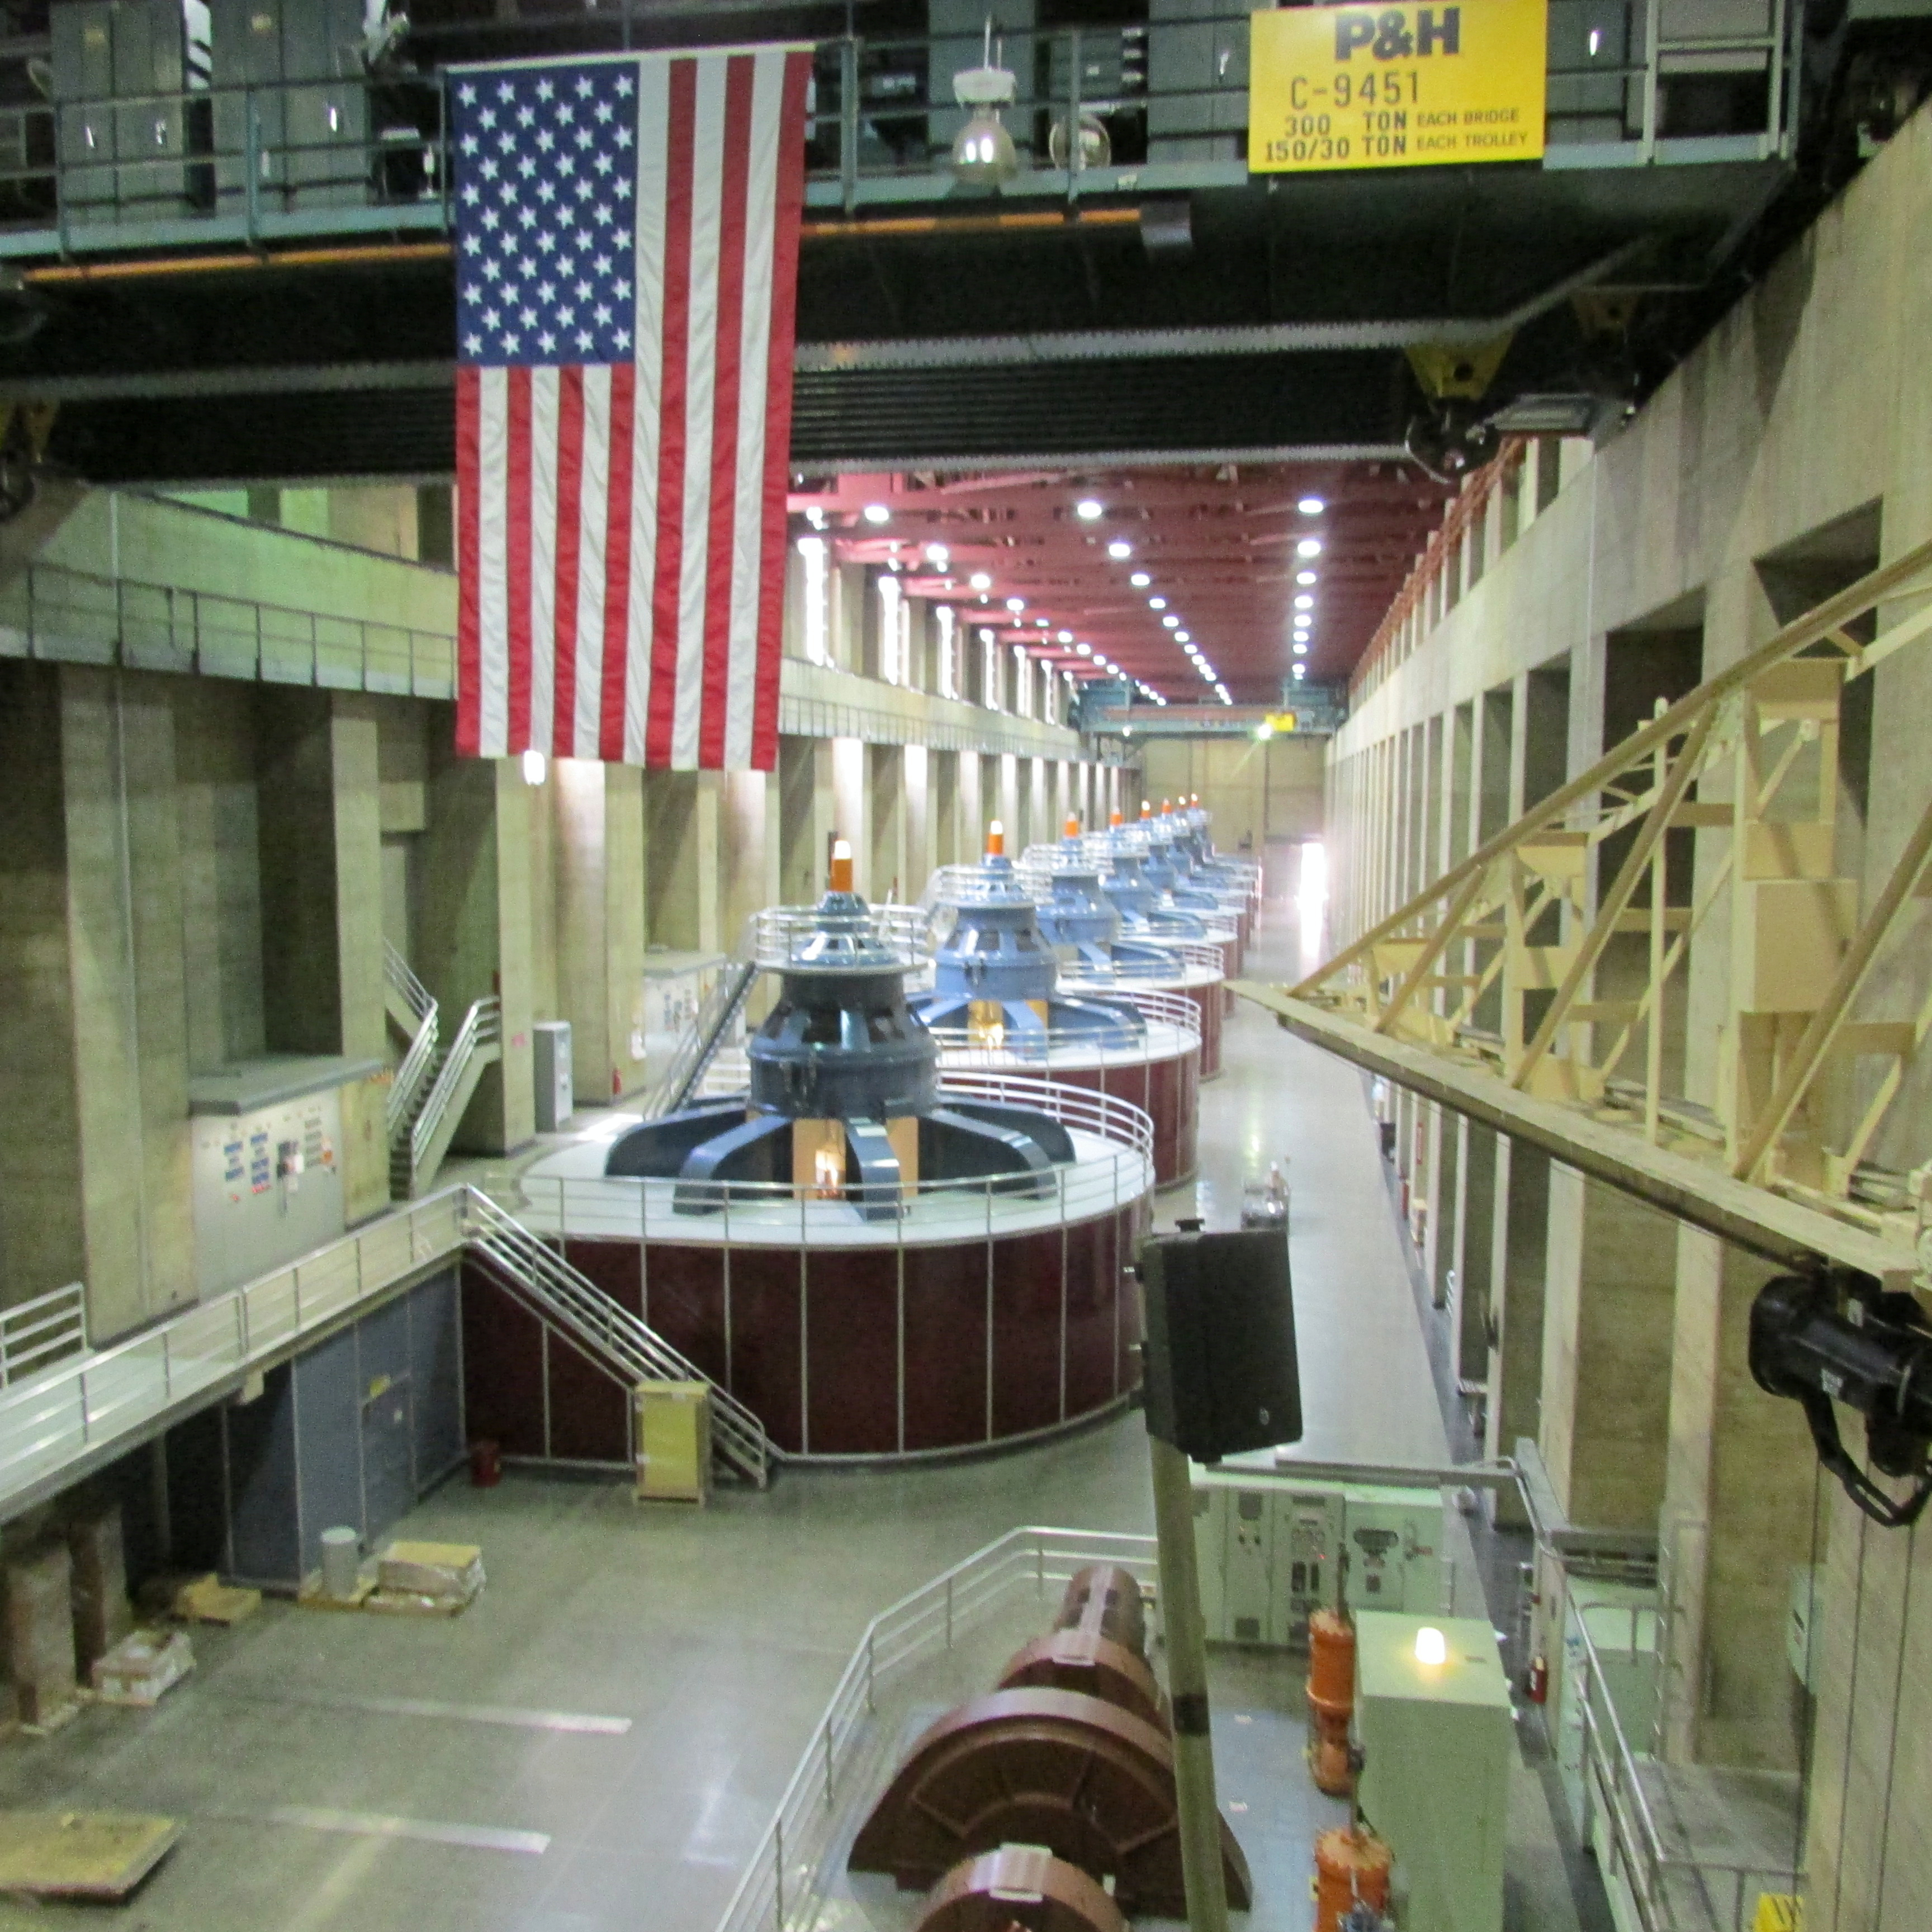 Nevada Archives Stories Of Our Boys Hoover Dam Power Plant Diagram Hydro Electric Pumps Or Something Like That